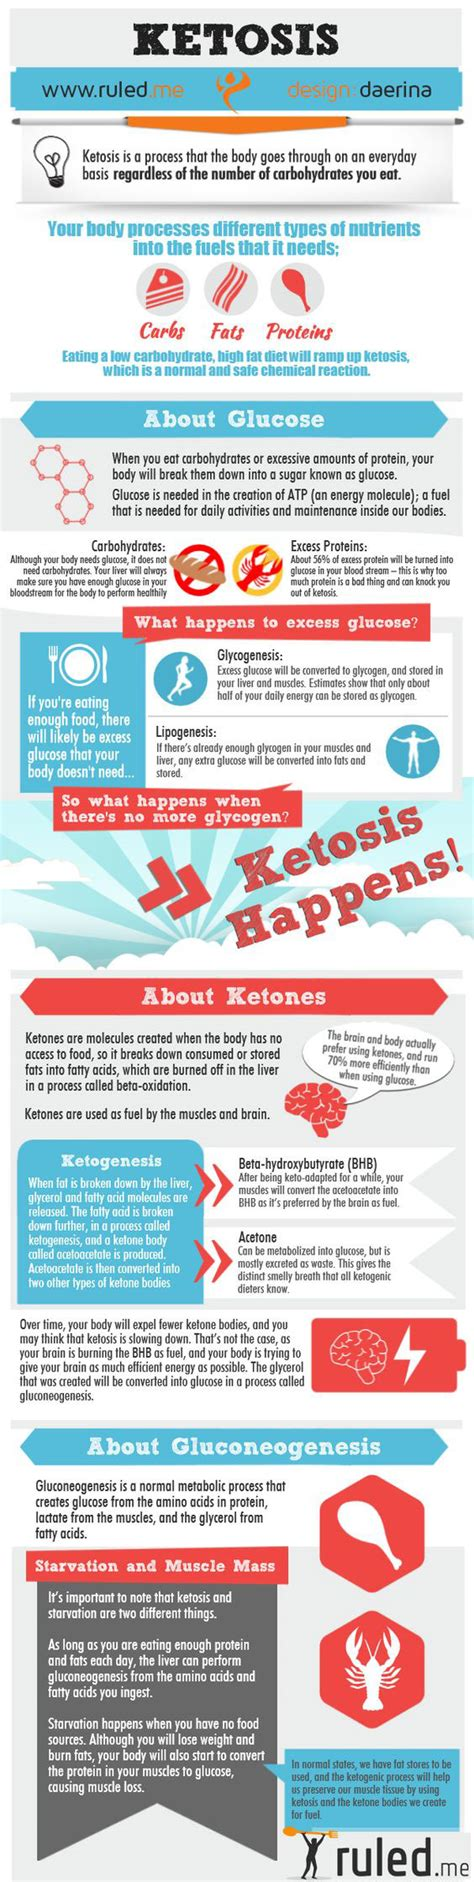 ketosis 2 manuscripts in 1 book the keto crockpot burn rapid loss in 4 weeks delicious recipes that you can cook at home books how to achieve ketosis infographic best infographics